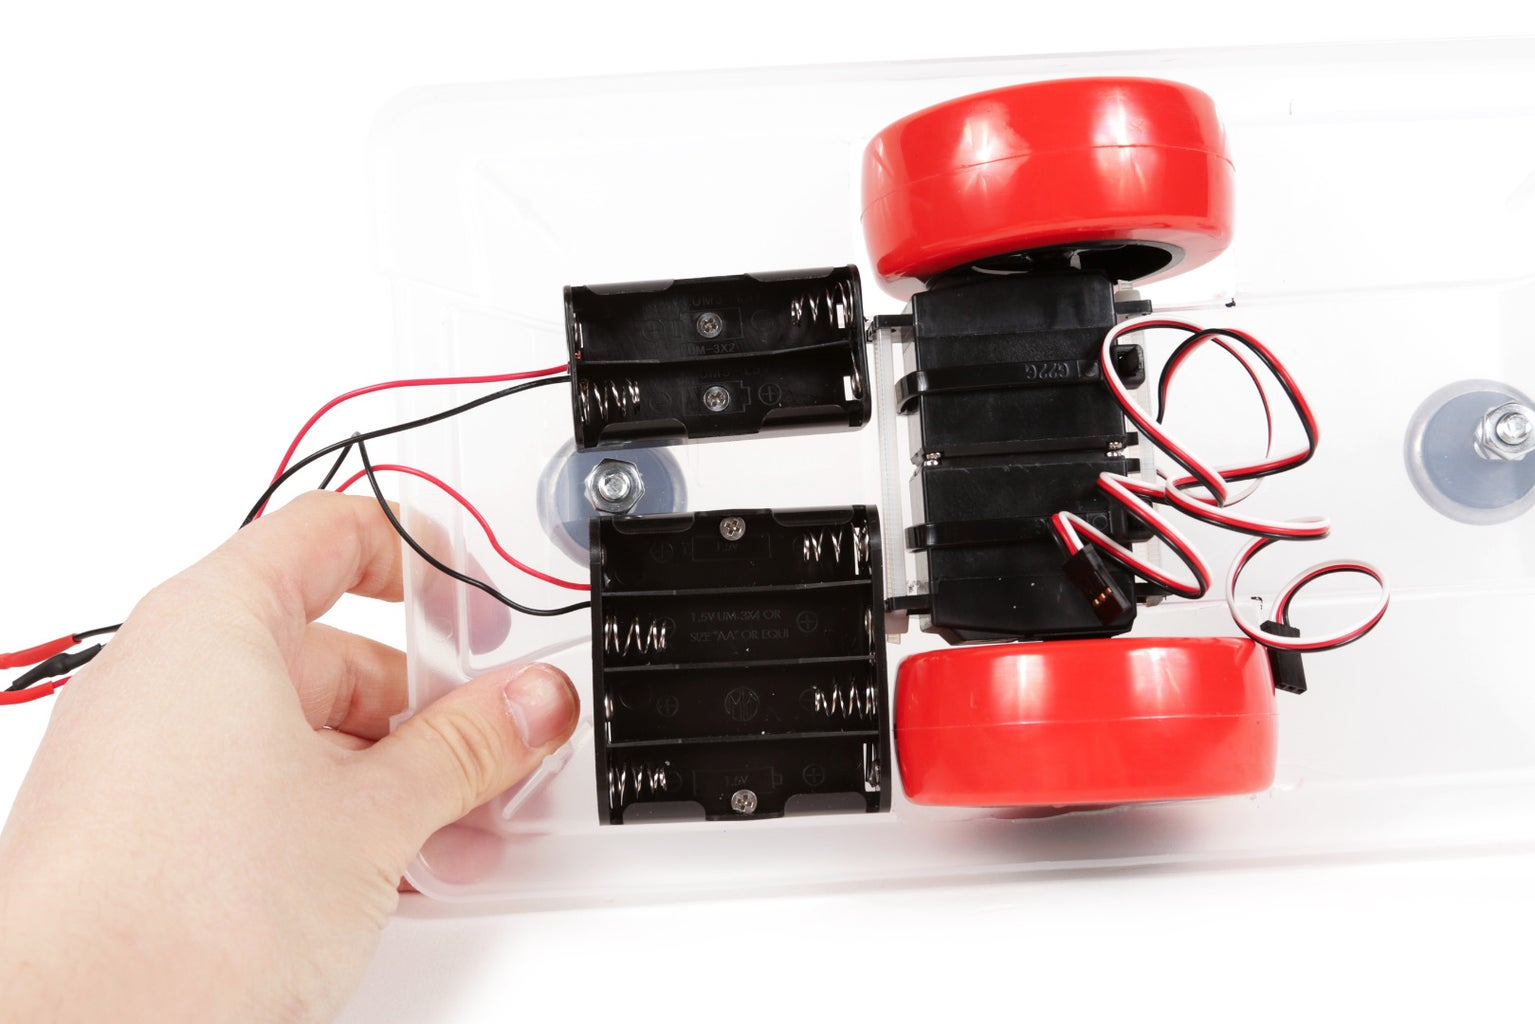 Mount the Battery Holders